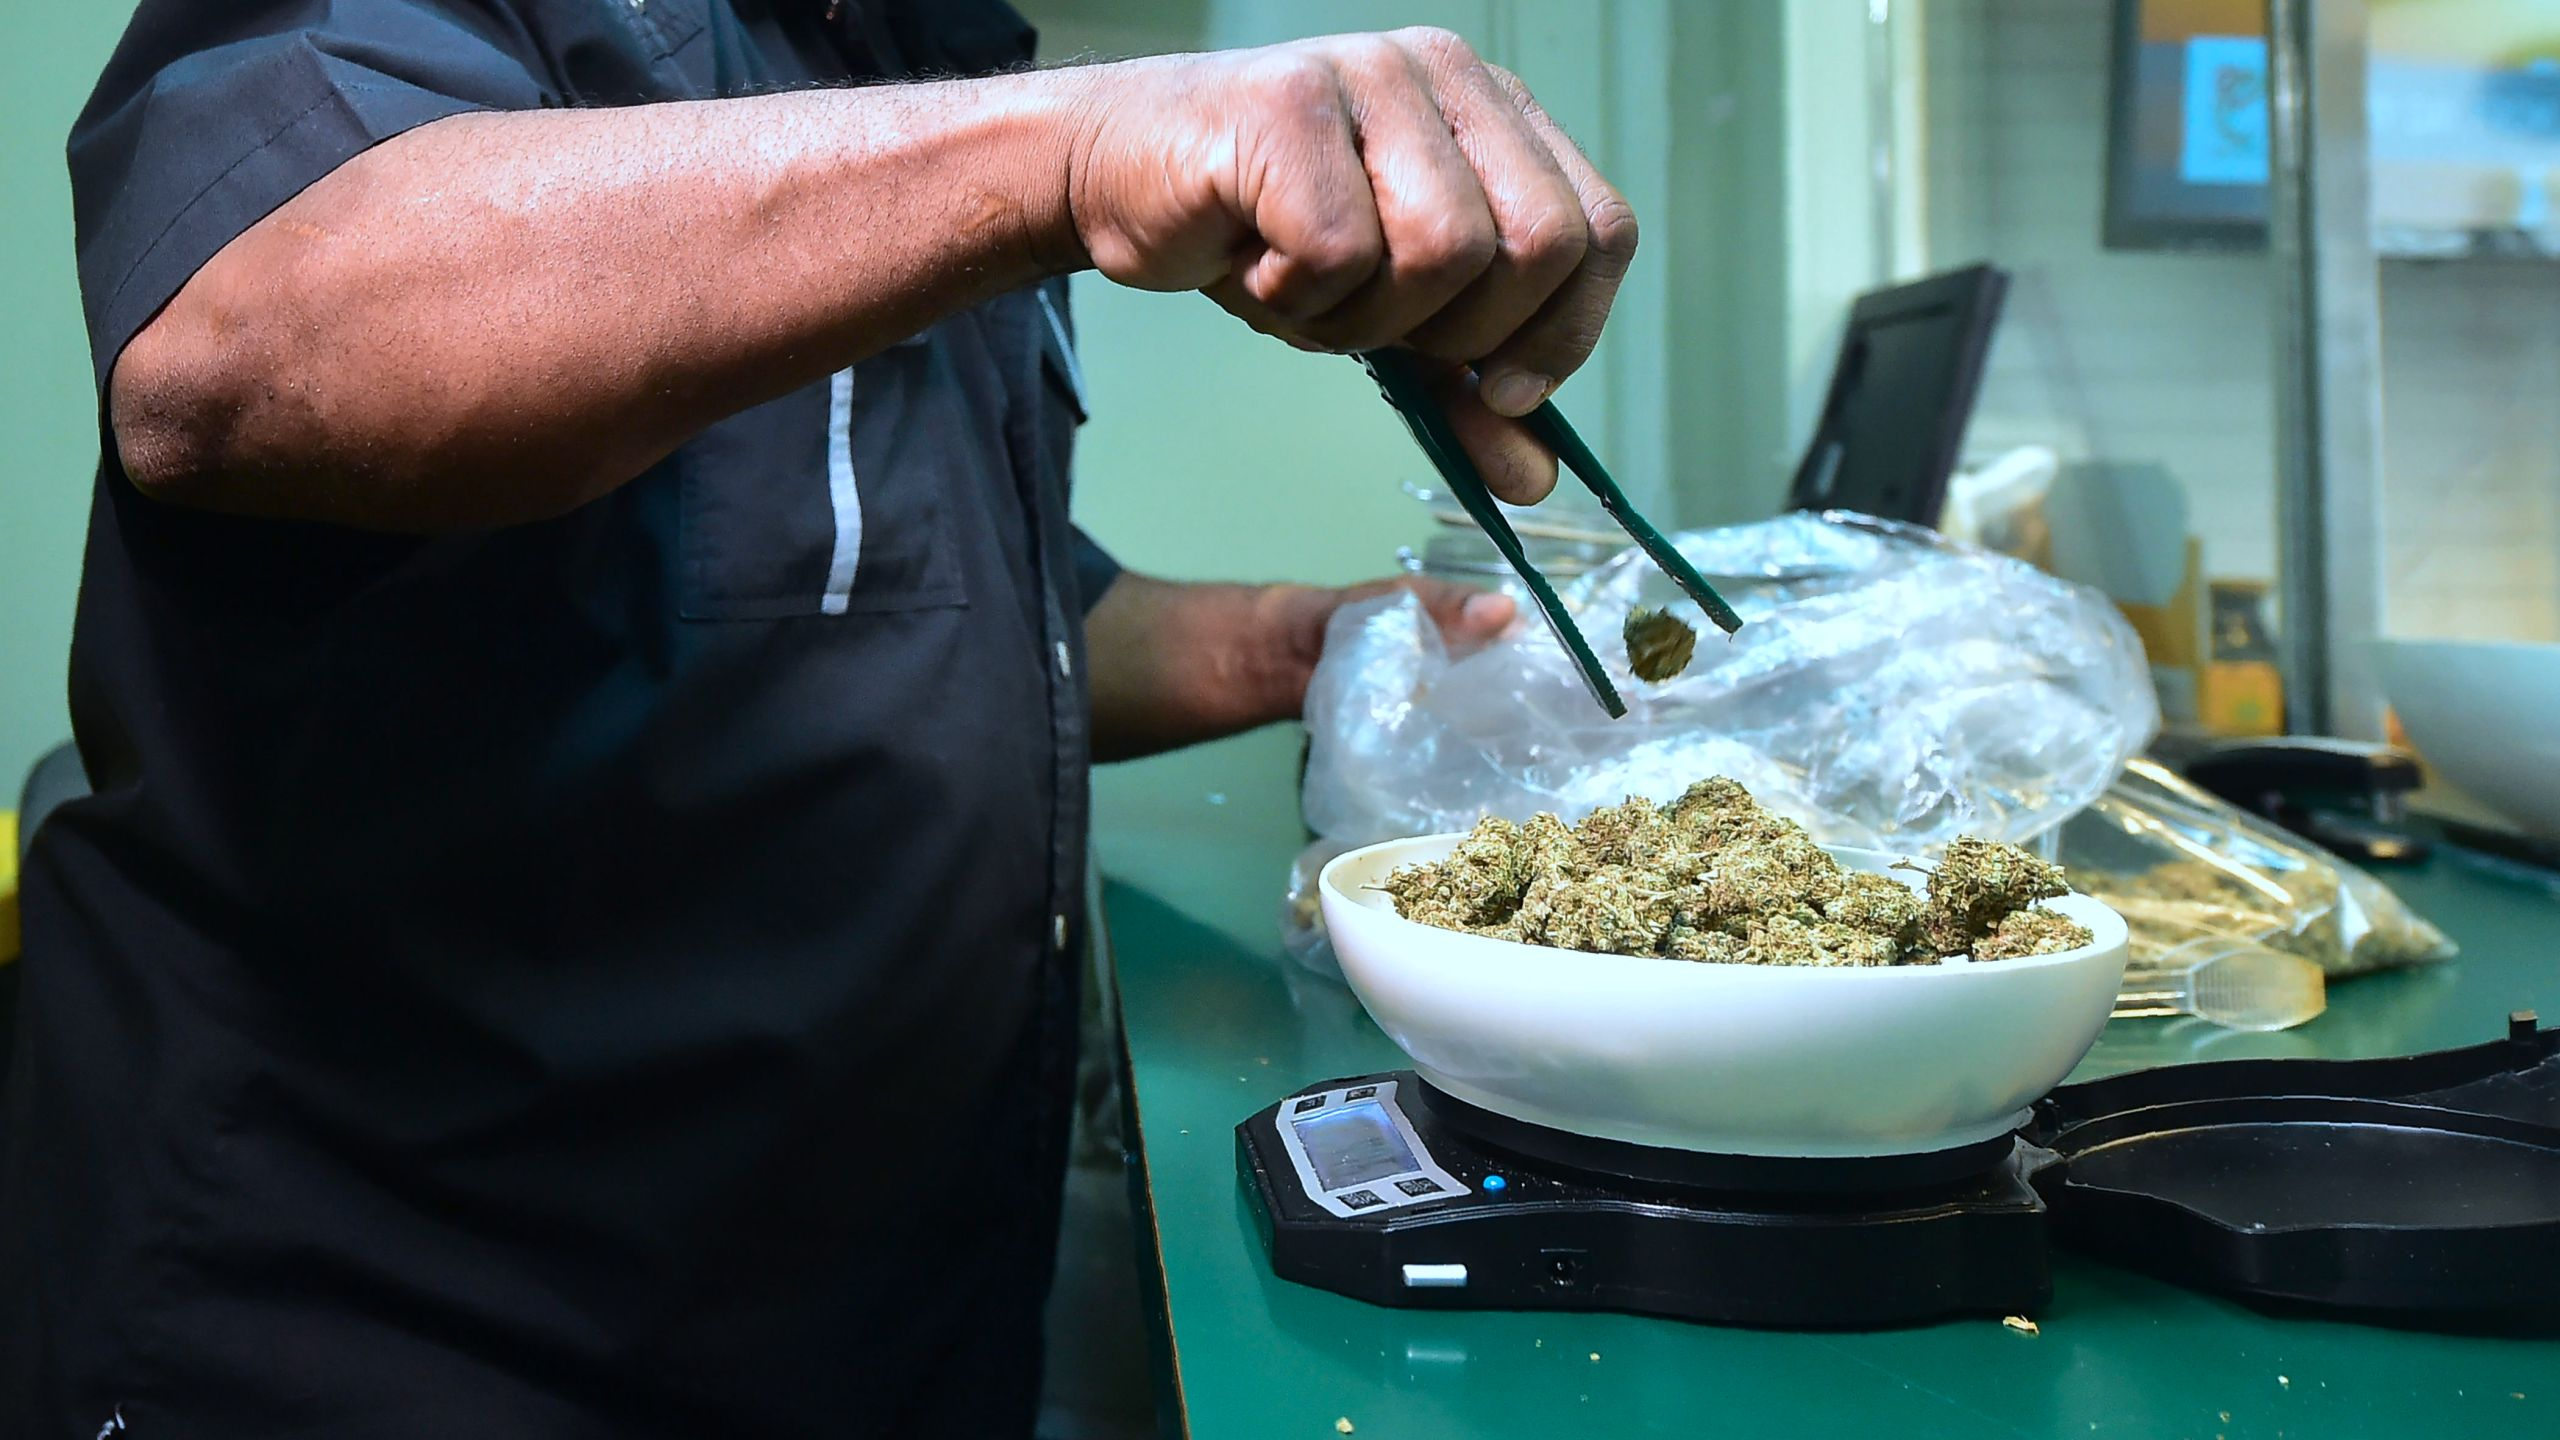 Marijuana is weighed on a scale at a dispensary in Los Angeles on Feb. 8, 2018. (Credit: Frederic J. Brown / AFP / Getty Images)